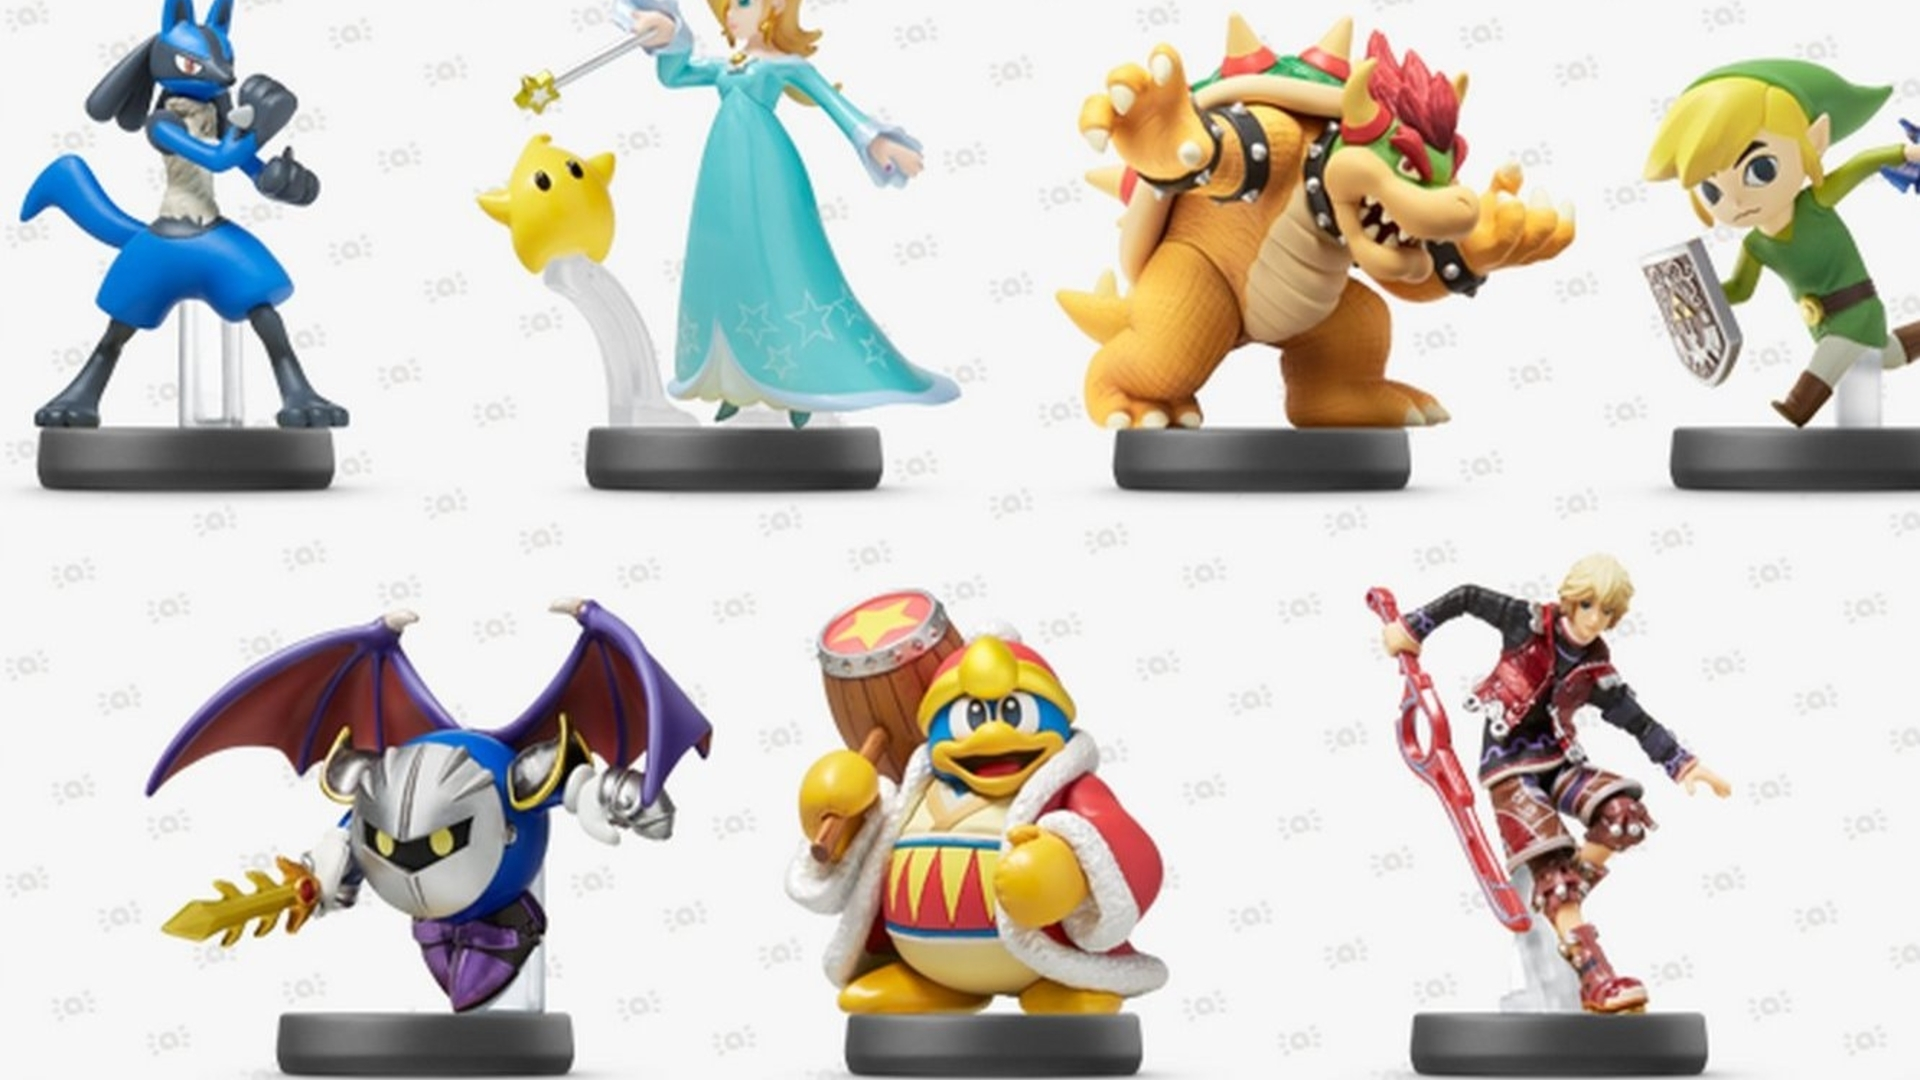 Nintendo shows off another two waves of Amiibo toys